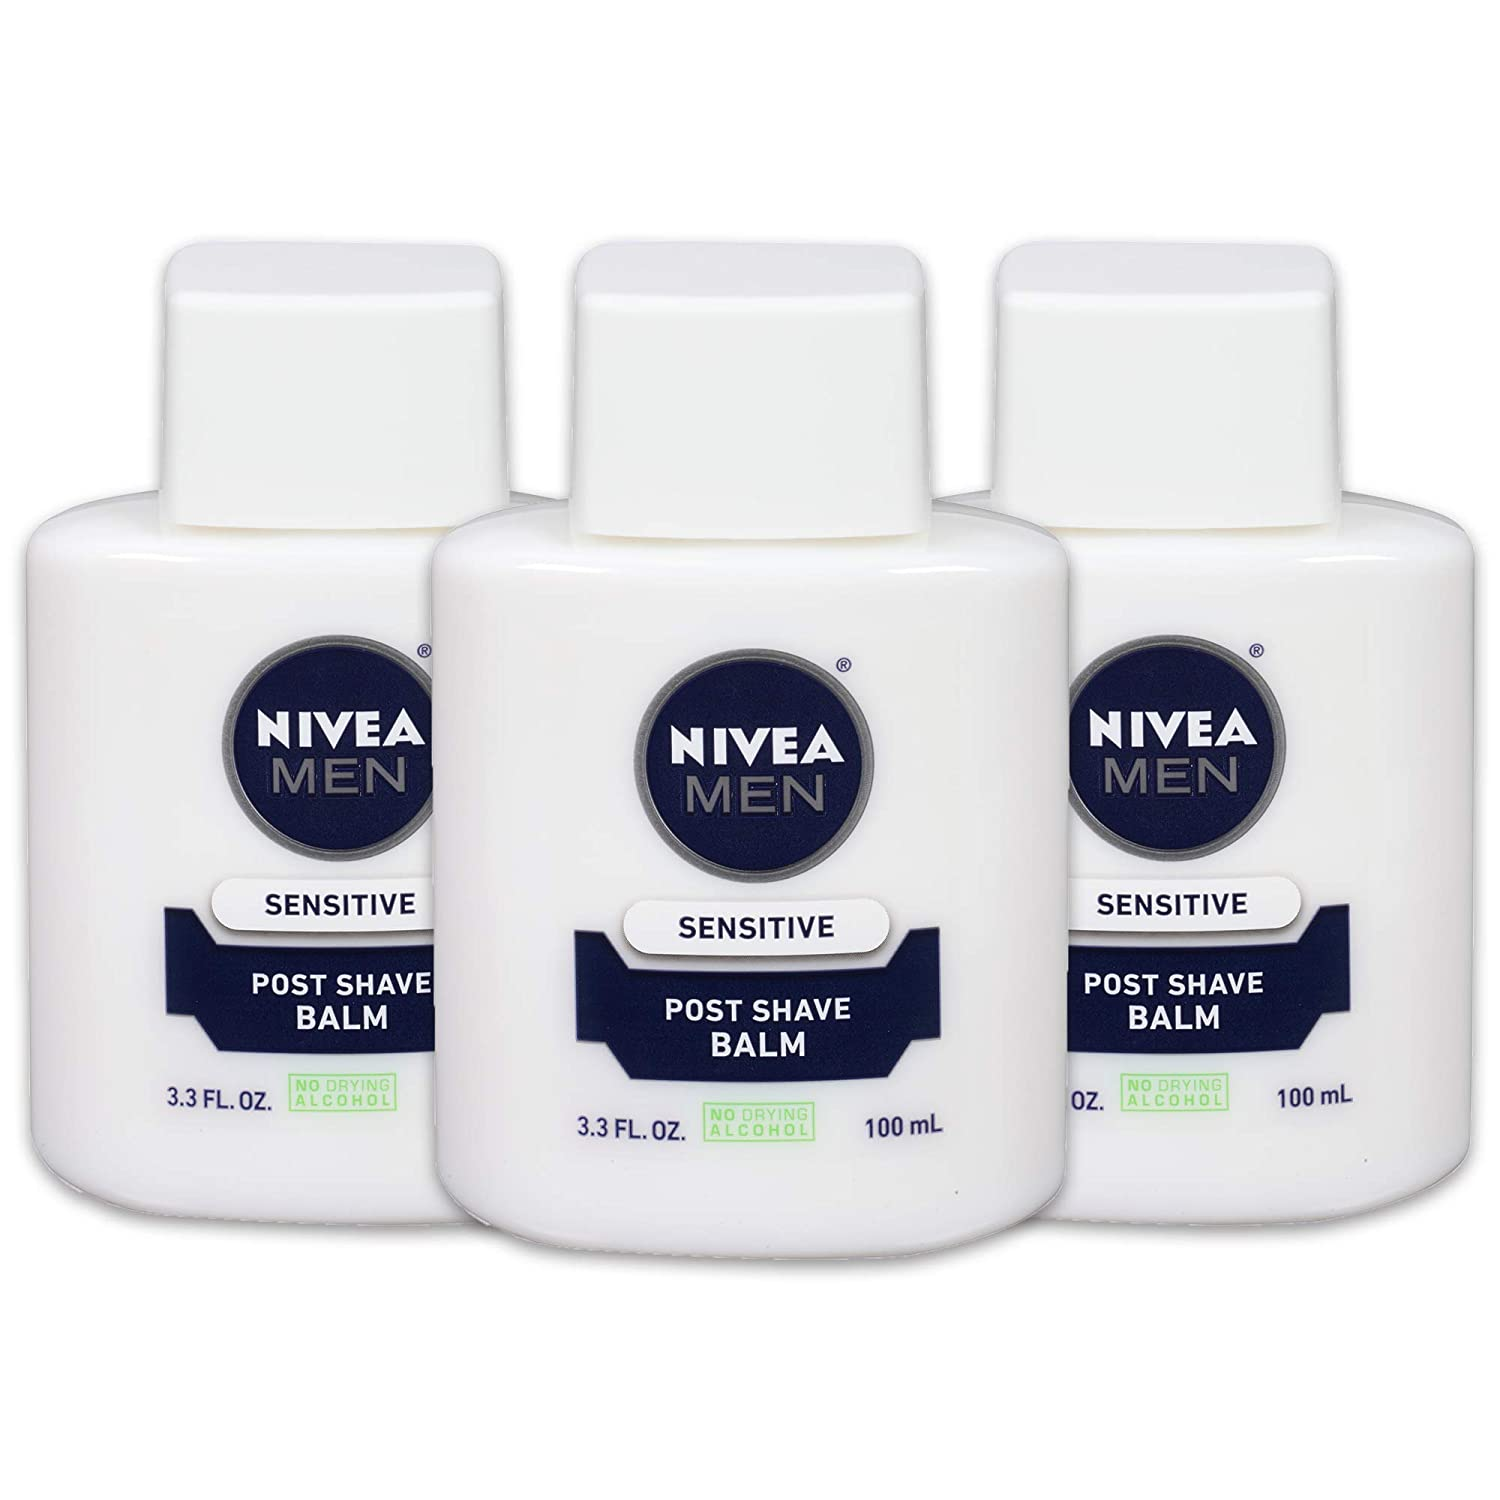 NIVEA Men Sensitive Post Shave Balm - Soothes and Moisturizes Skin After Shaving - 3.3 fl. oz. Bottle (Pack of 3)